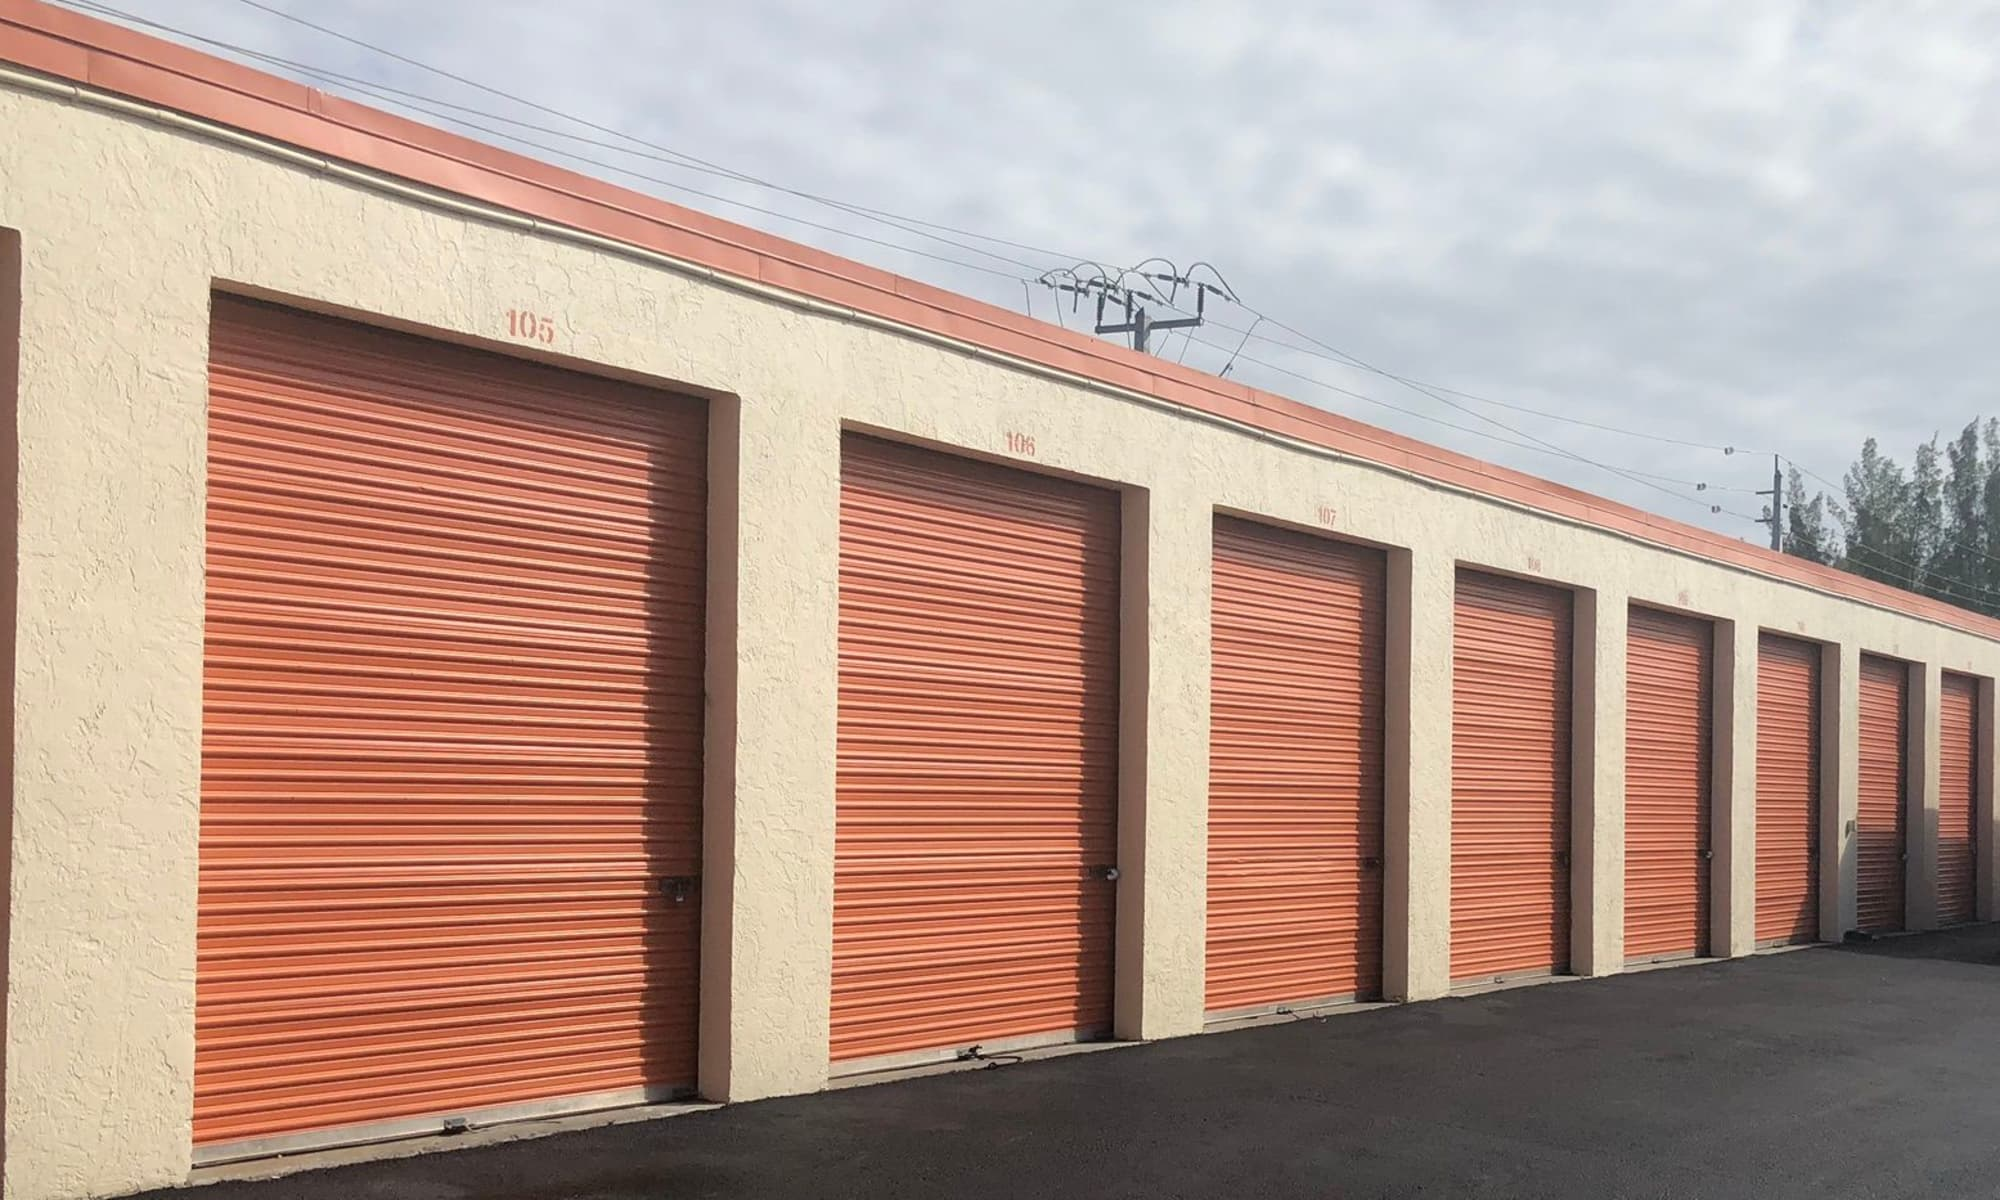 Find your self storage at Top Self Storage - North Lauderdale